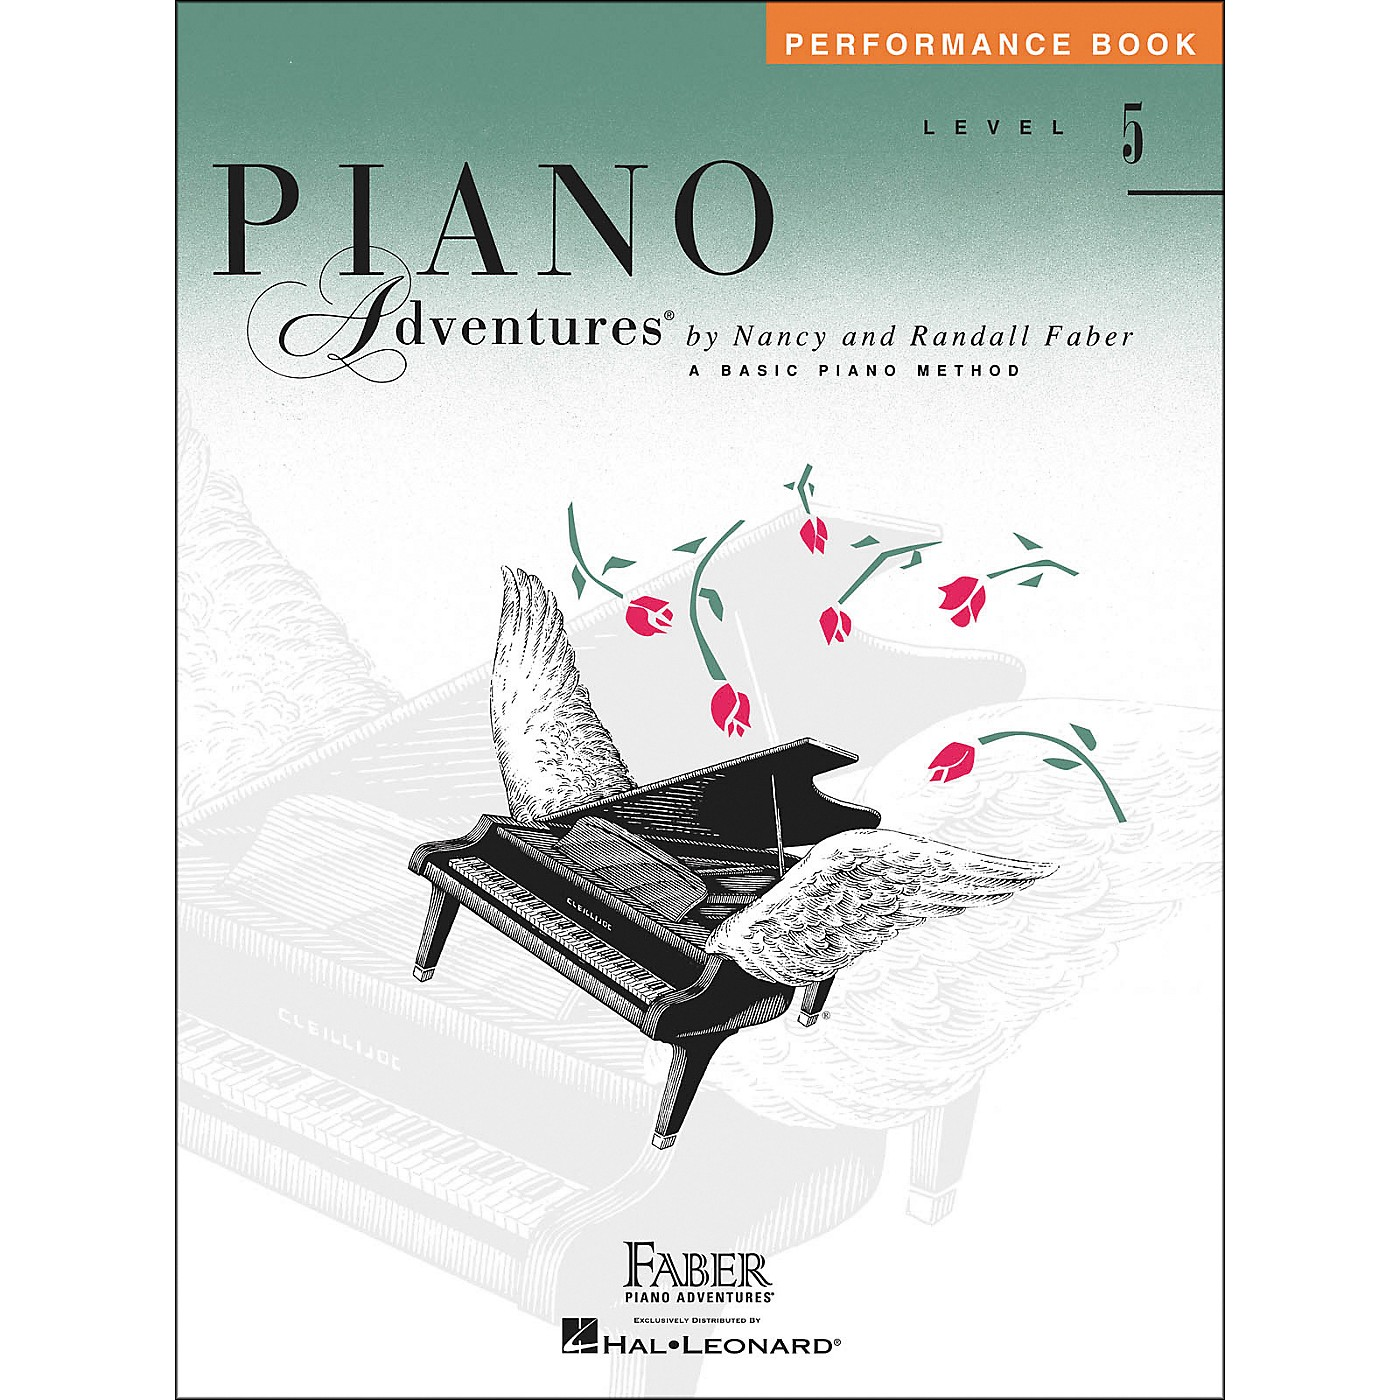 Faber Piano Adventures Piano Adventures Performance Book Level 5 - Faber Piano thumbnail